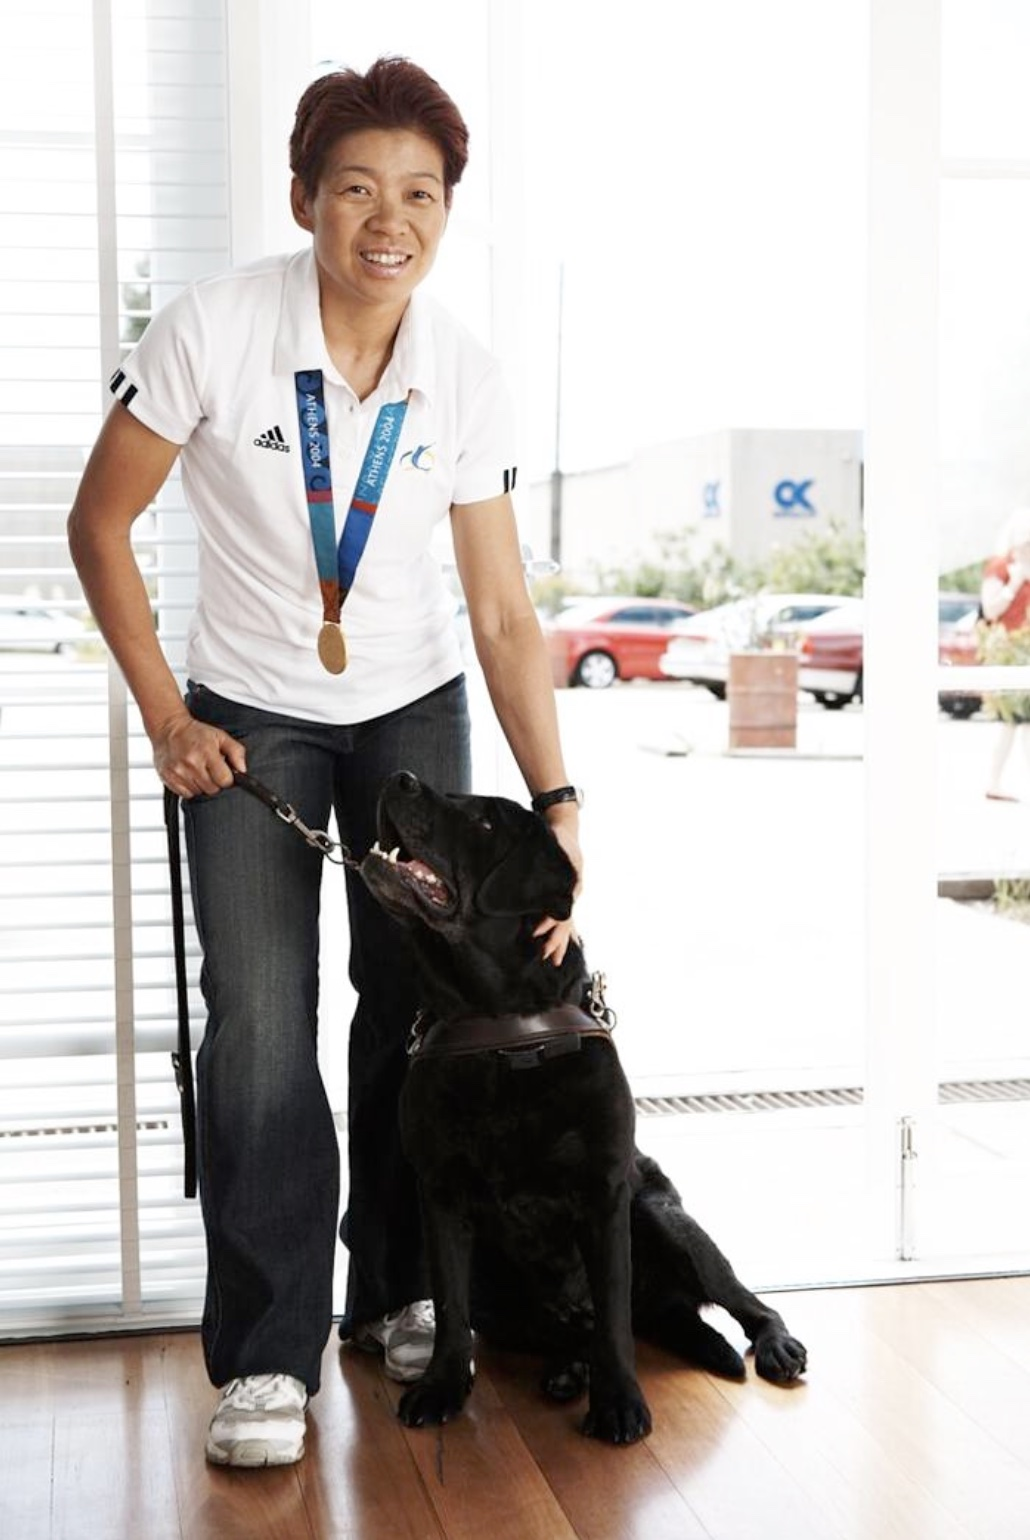 woman in track pants, T-shirt, with black guide dog